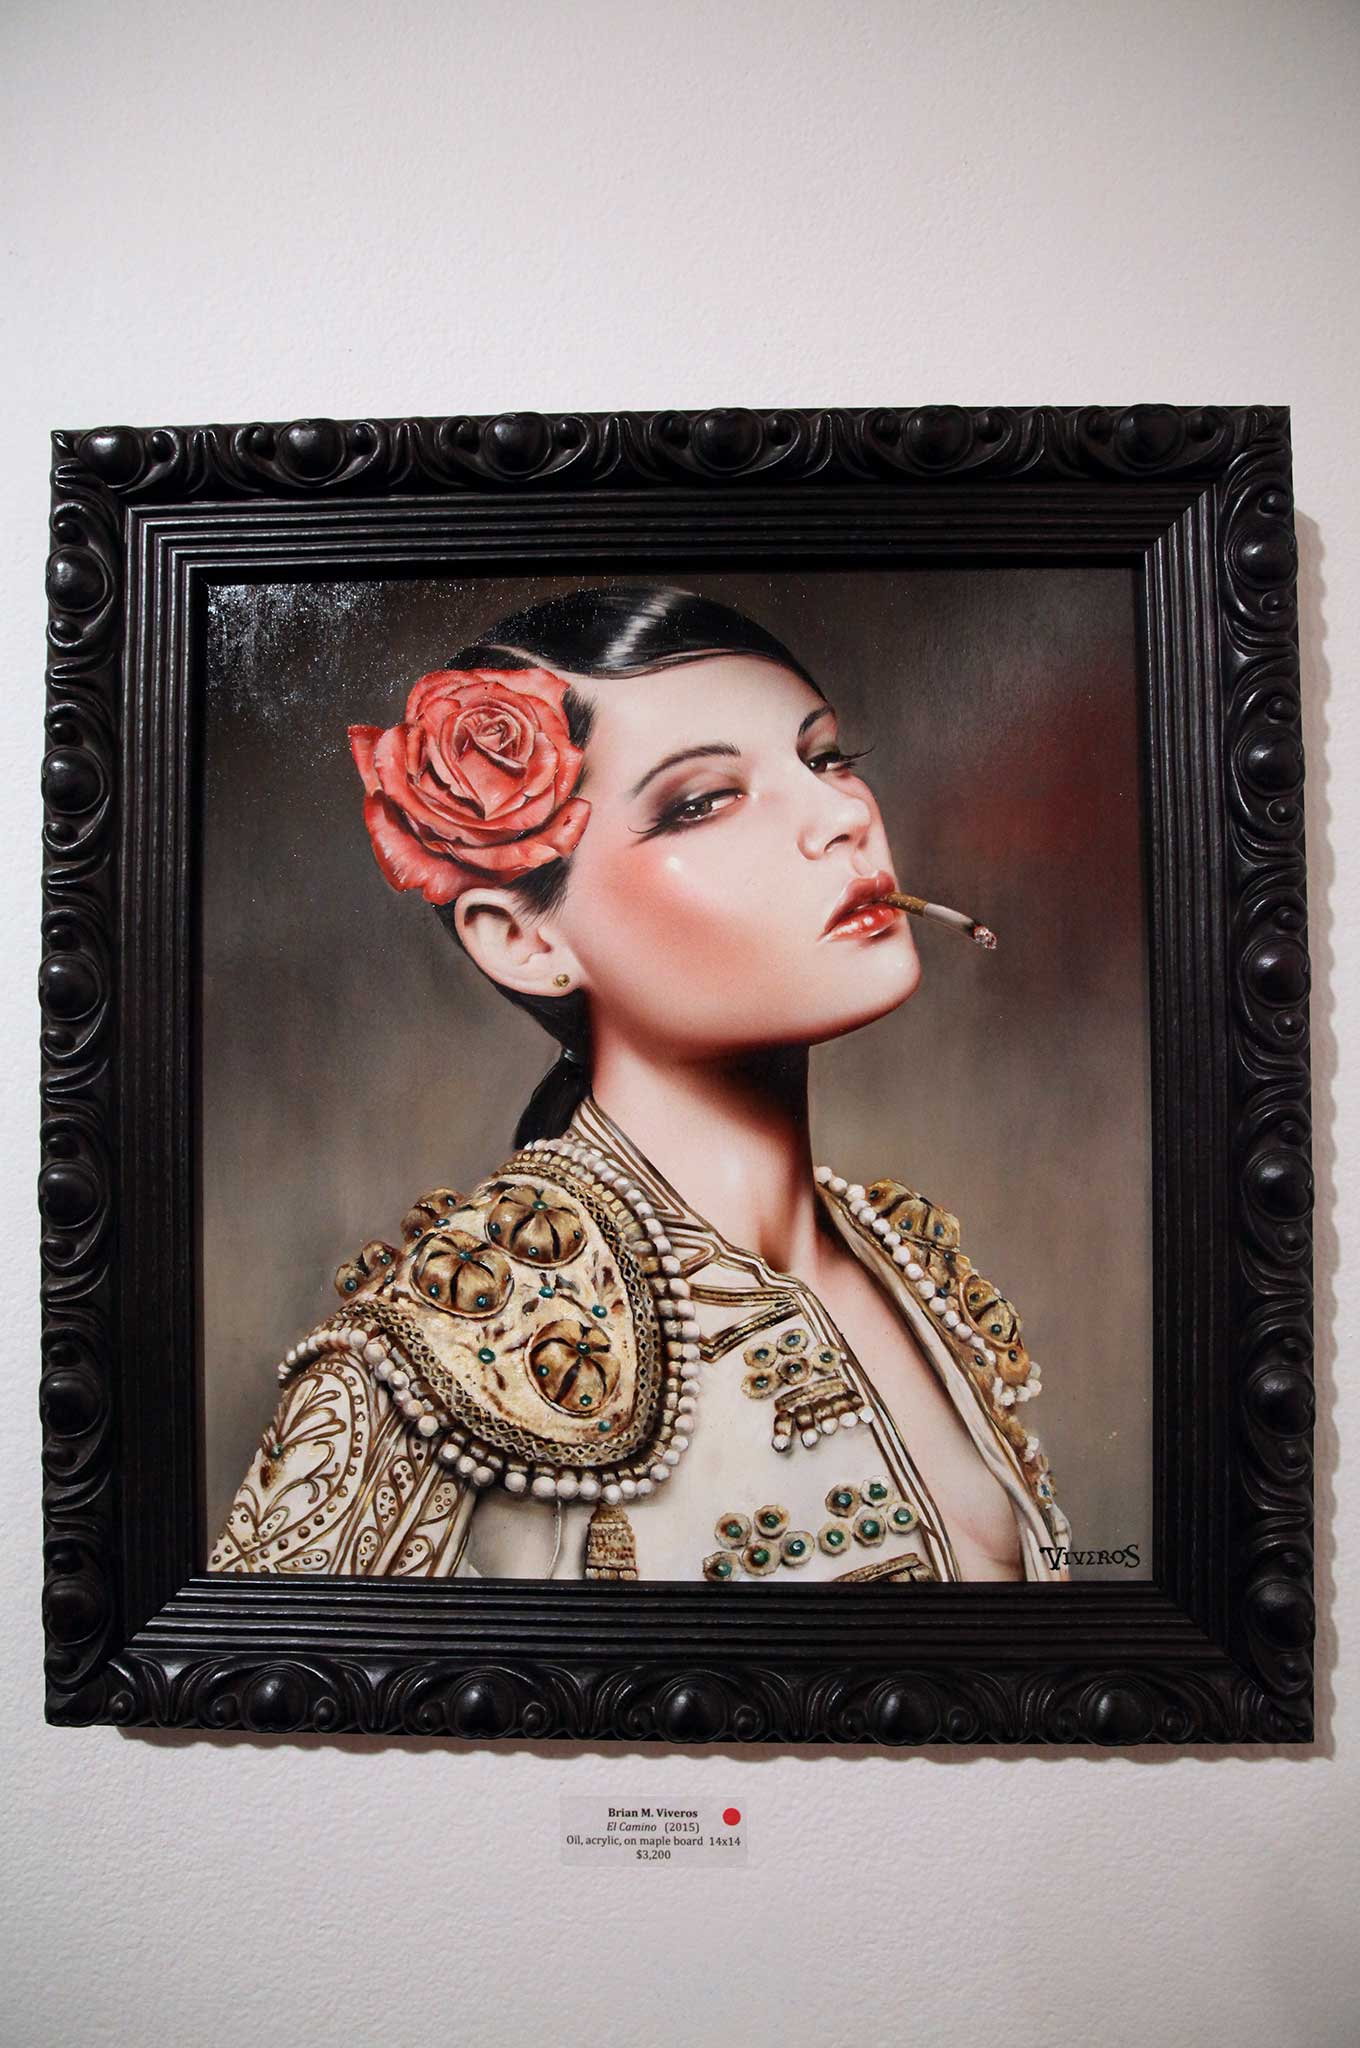 matador art exhibition brian m viveros artwork 019